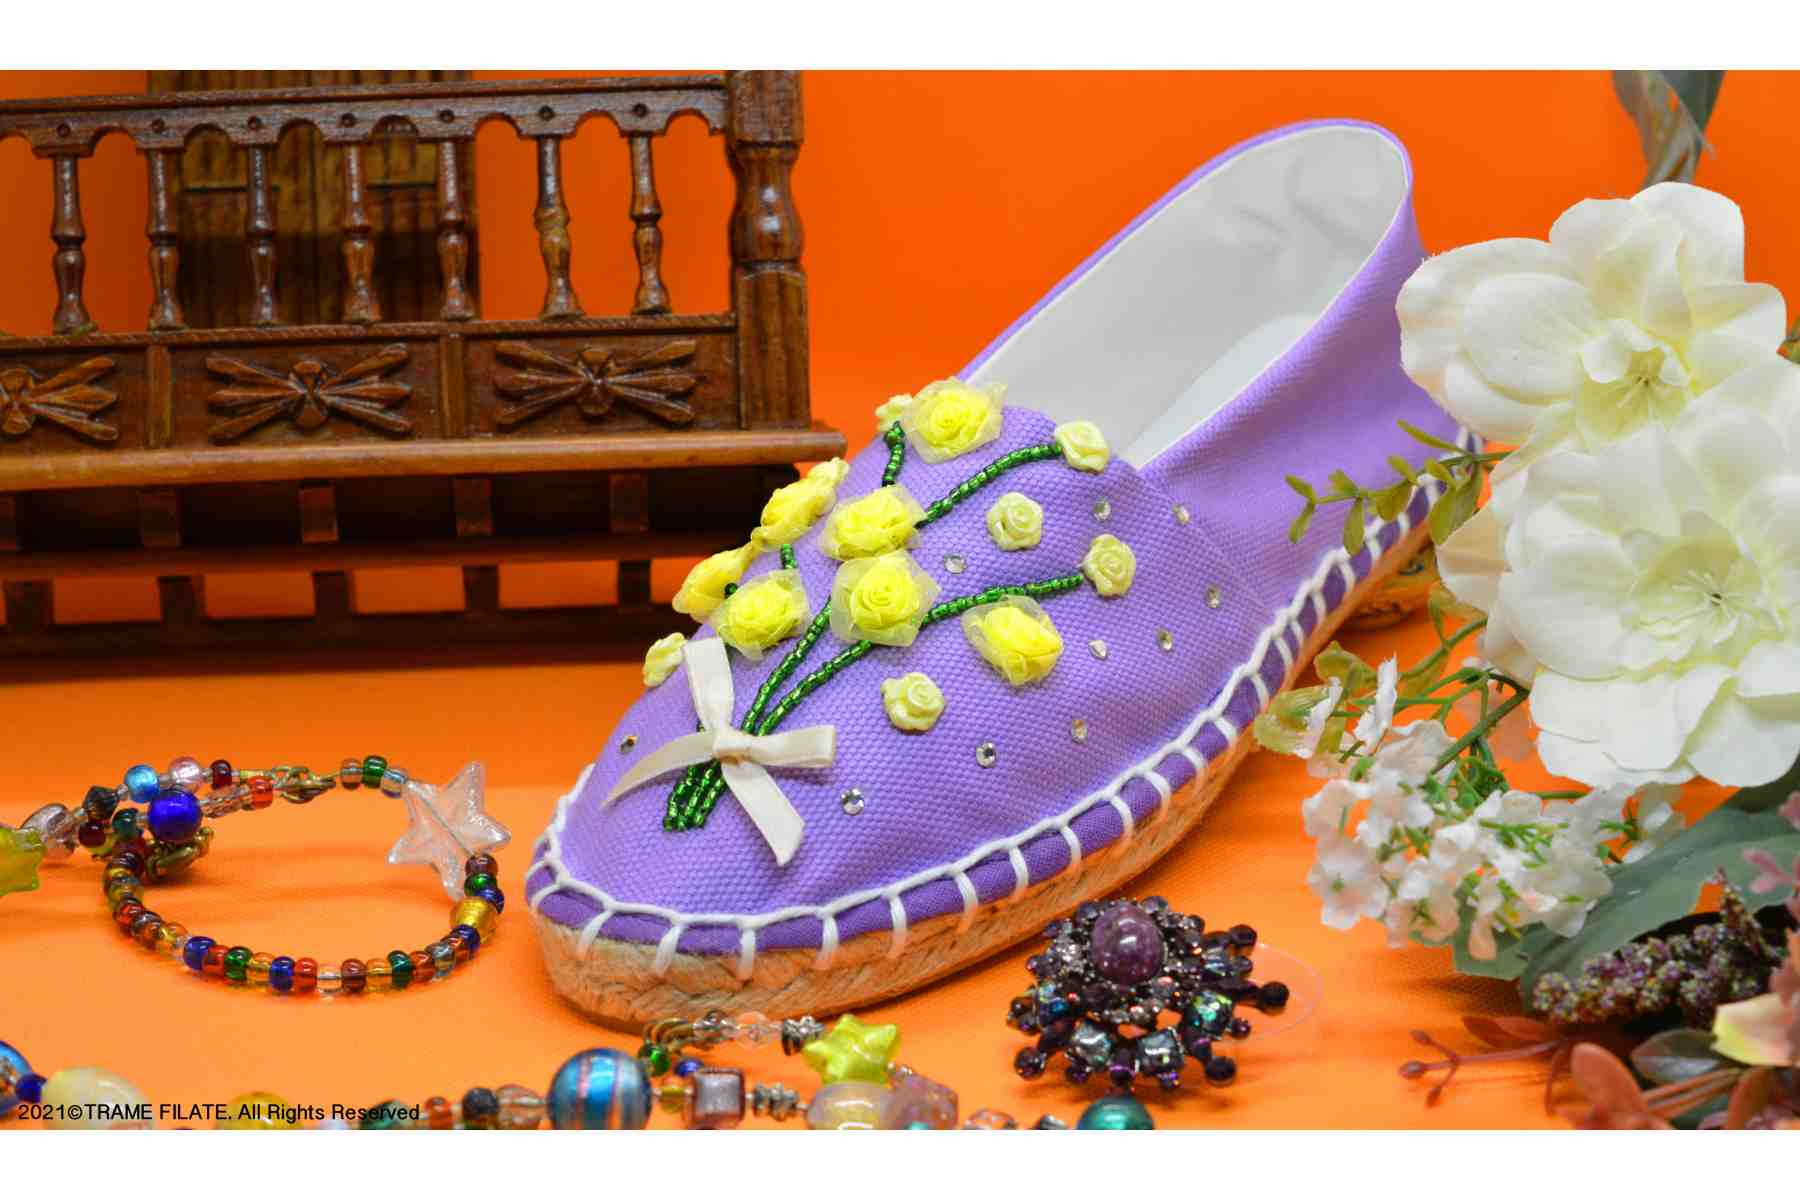 The Espadrilles' collection Wedding Package